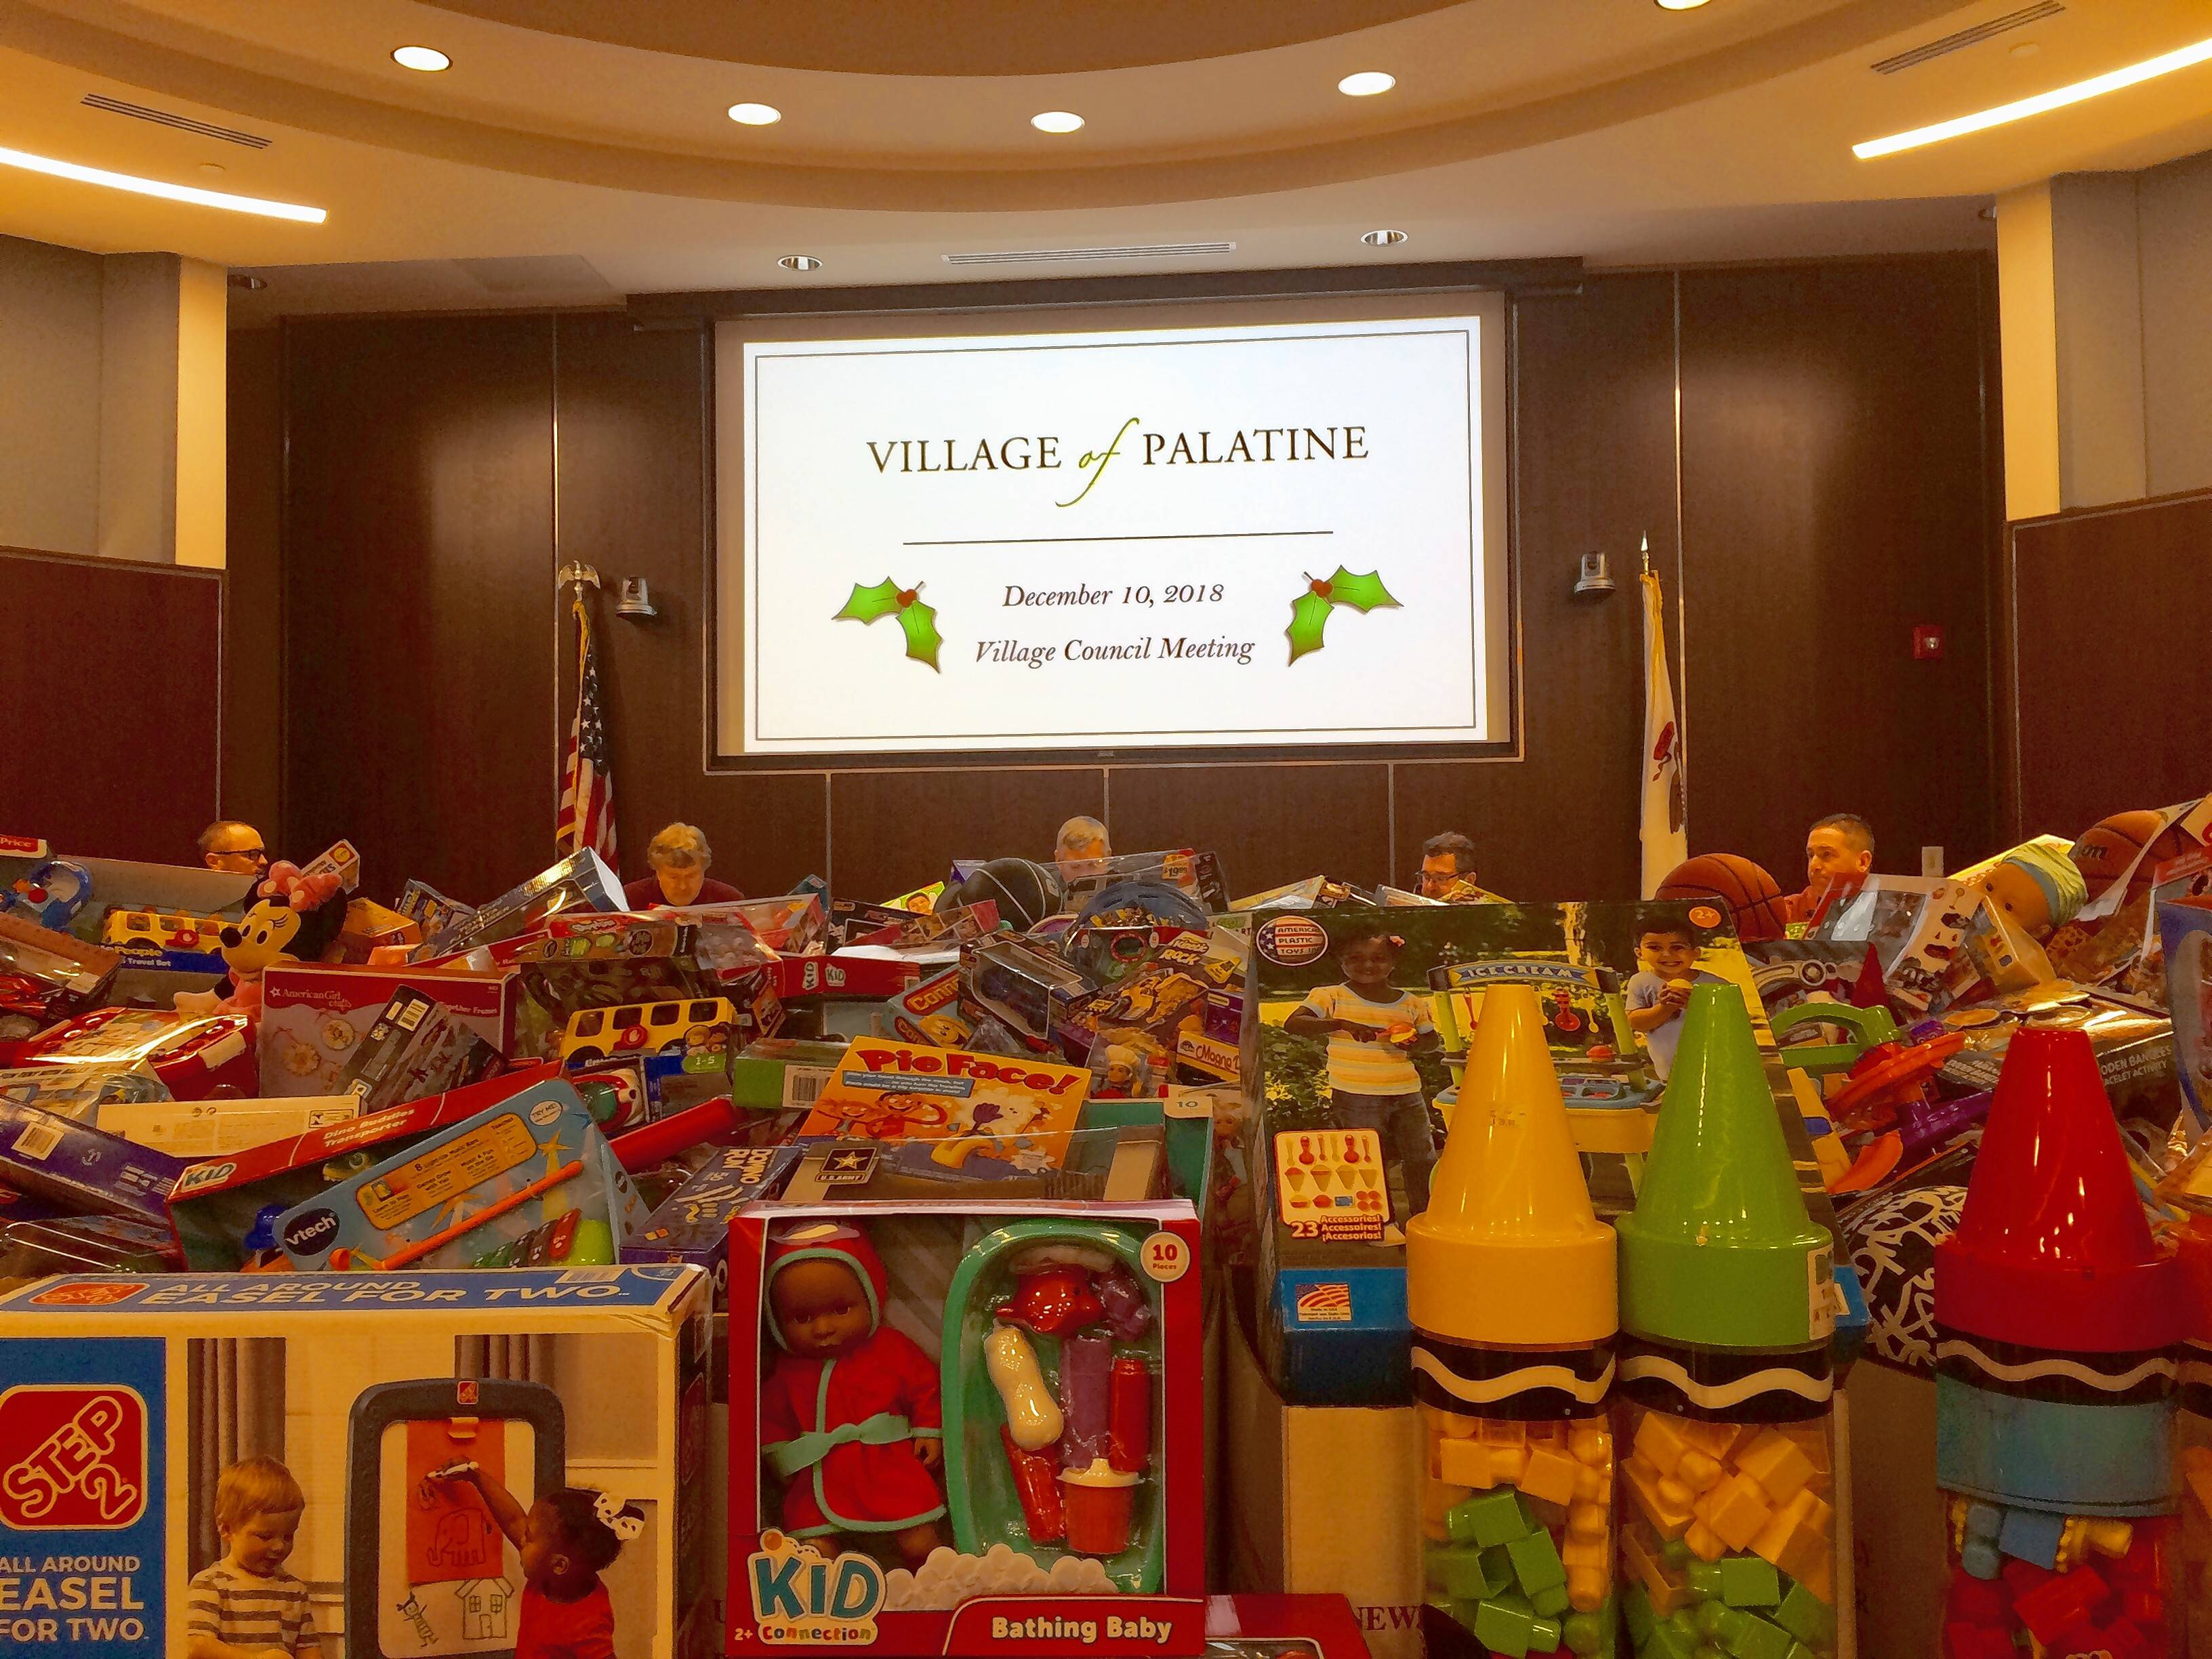 Palatine's village council chamber showed the area's generosity this week as it was packed with gifts that will go to less fortunate children for Christmas.